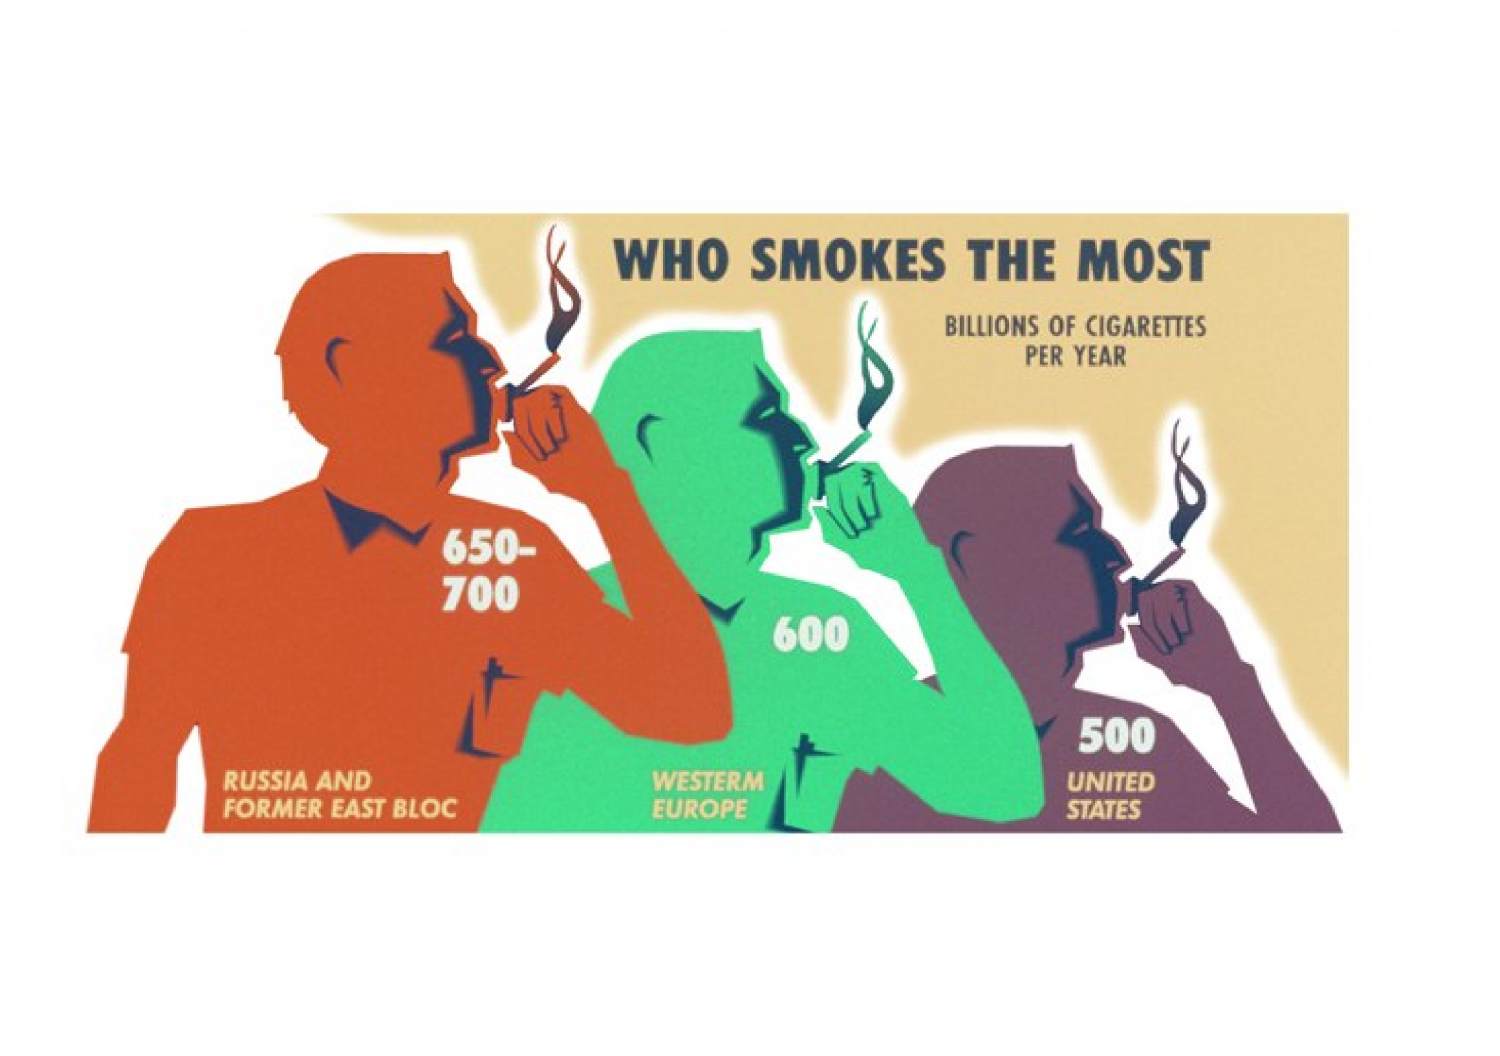 Who Smokes the Most Infographic